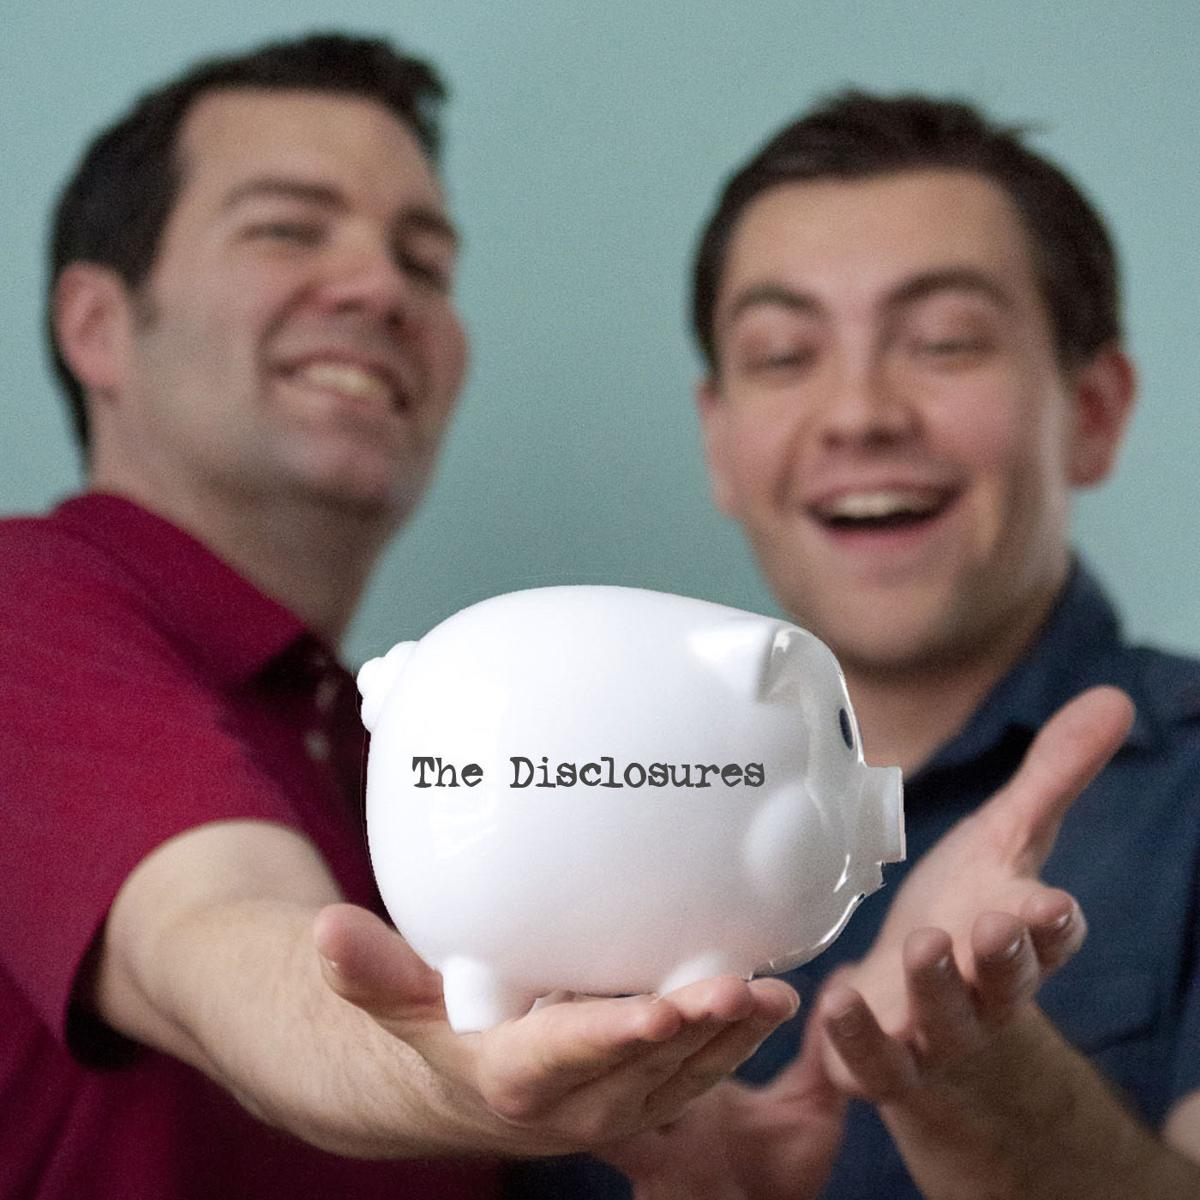 The Disclosures